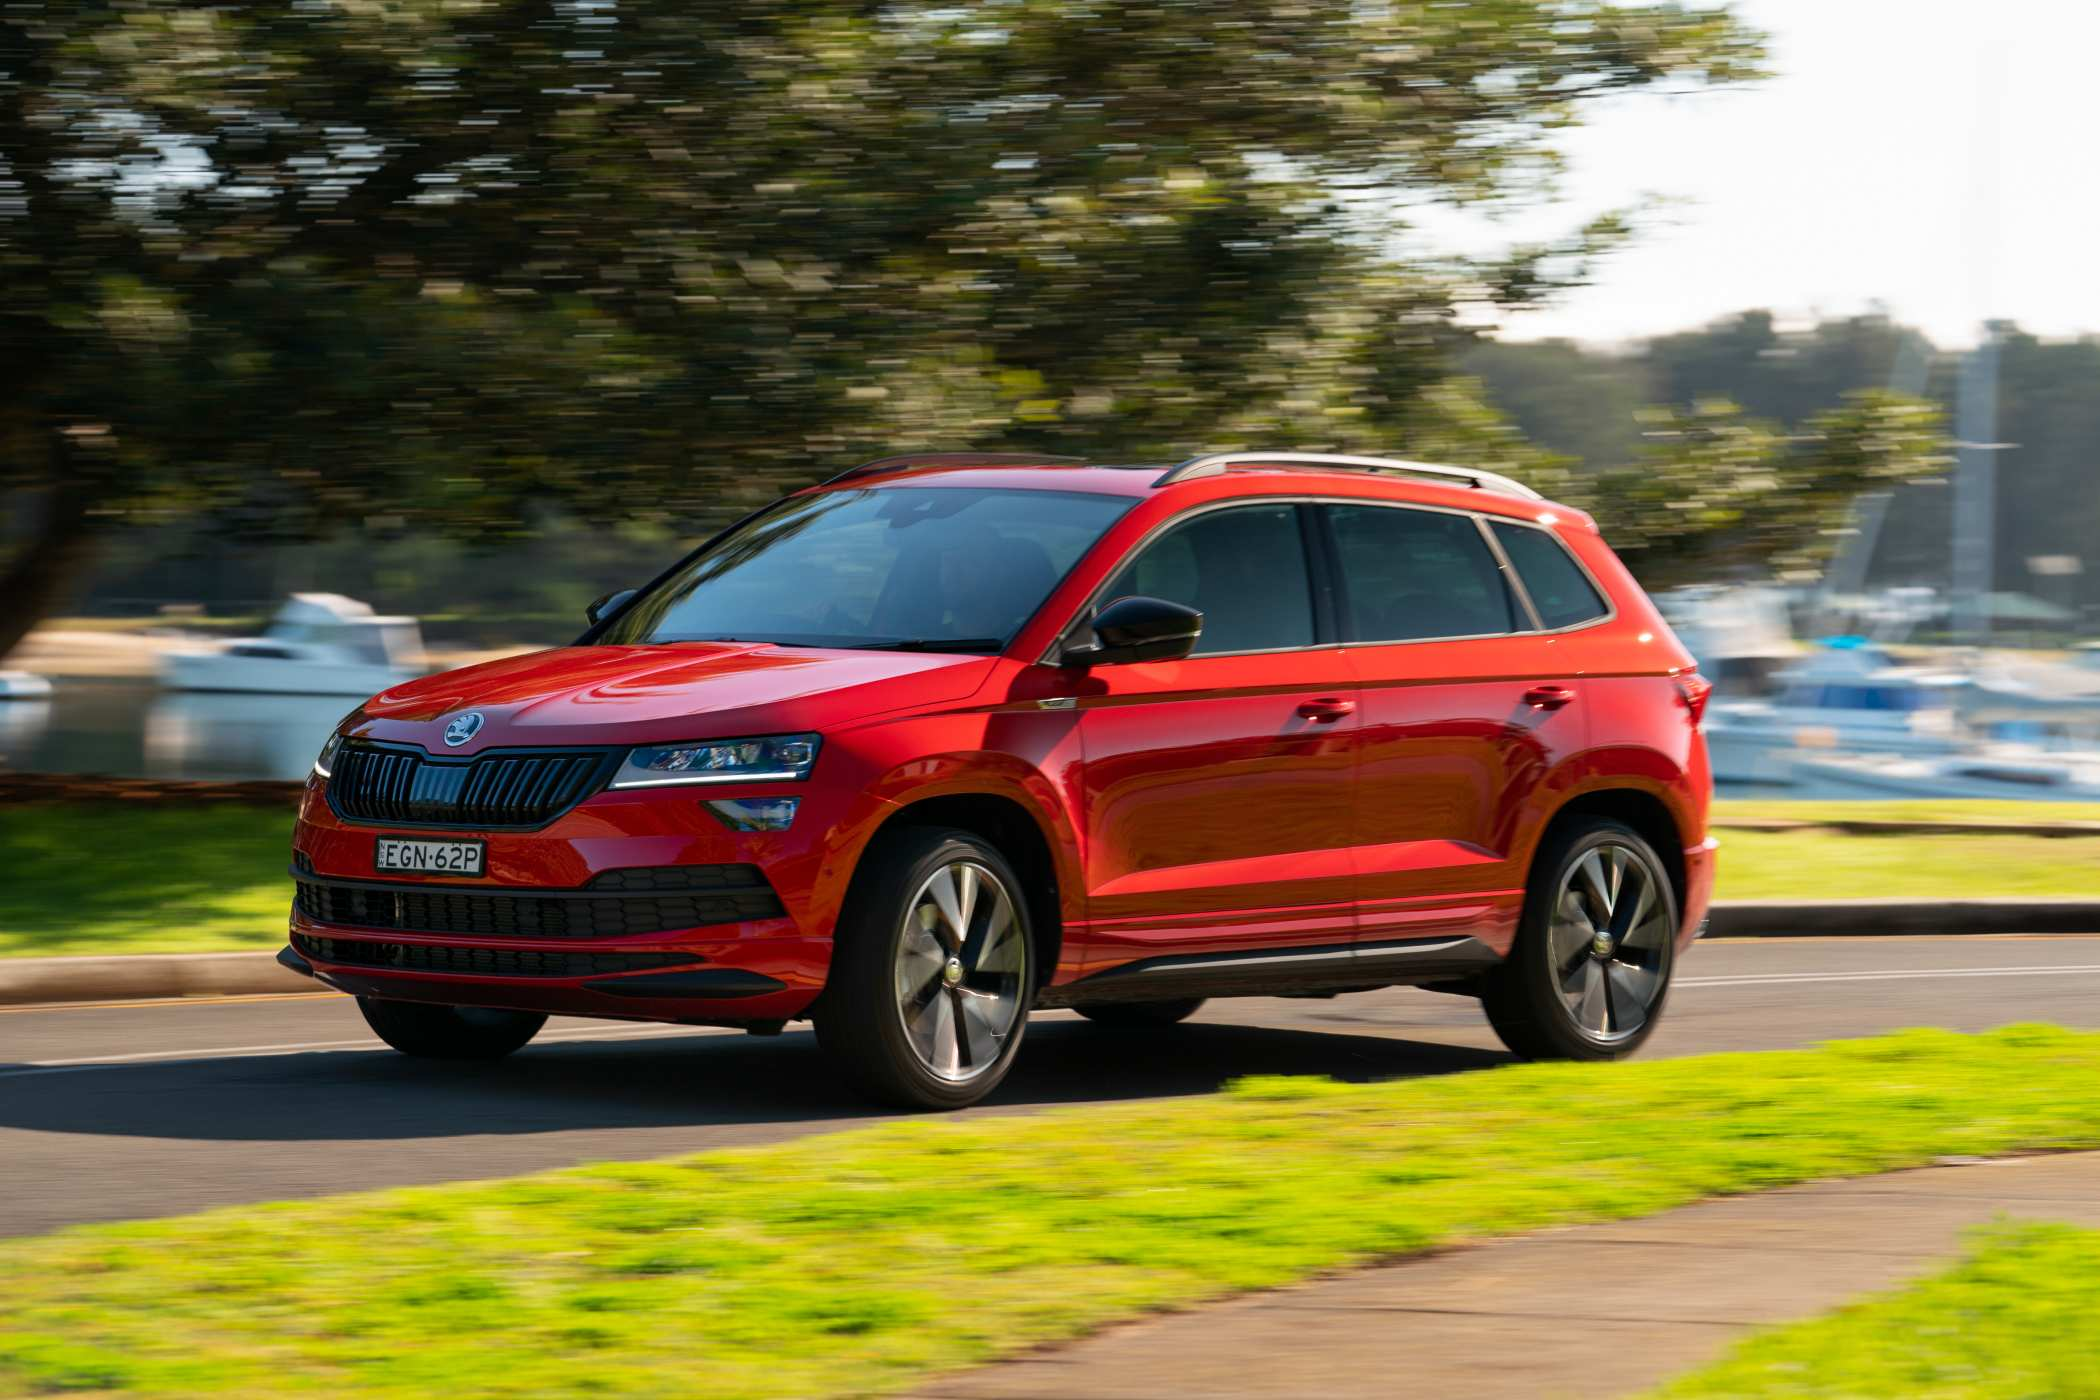 Powered by the Volkswagen Group's 2.0-litre turbo petrol EA888, the Sportline puts 140kW and 320Nm to the road via a 7-speed DQ381 DSG transmission and all-wheel-drive. Drive Mode Select is standard.